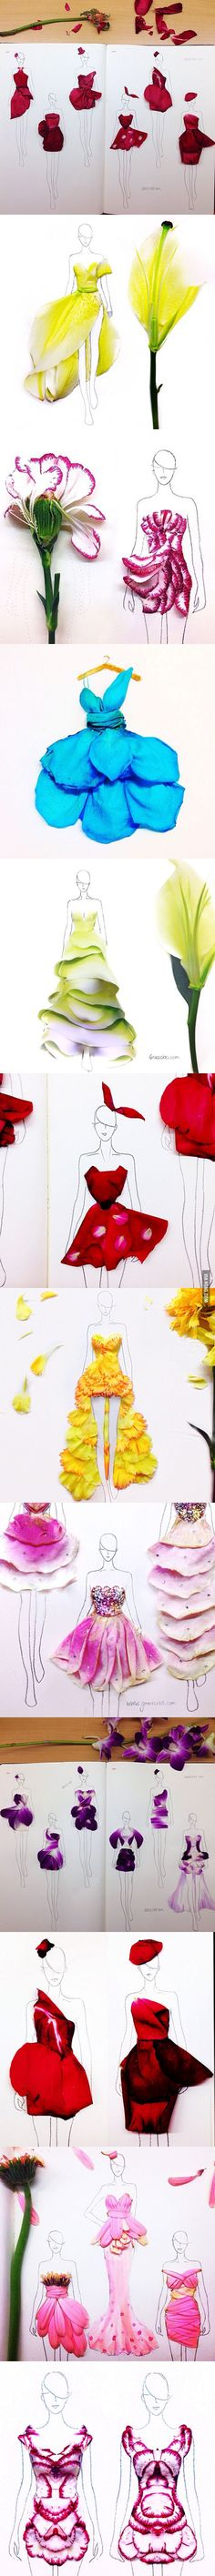 Funny pictures about Fashion Illustrations With Real Flower Petals As Clothing. Oh, and cool pics about Fashion Illustrations With Real Flower Petals As Clothing. Also, Fashion Illustrations With Real Flower Petals As Clothing photos. Fashion Sketches, Fashion Illustrations, Fashion Drawings, Design Illustrations, Arte Fashion, Illustration Mode, Real Flowers, Blooming Flowers, Flower Petals